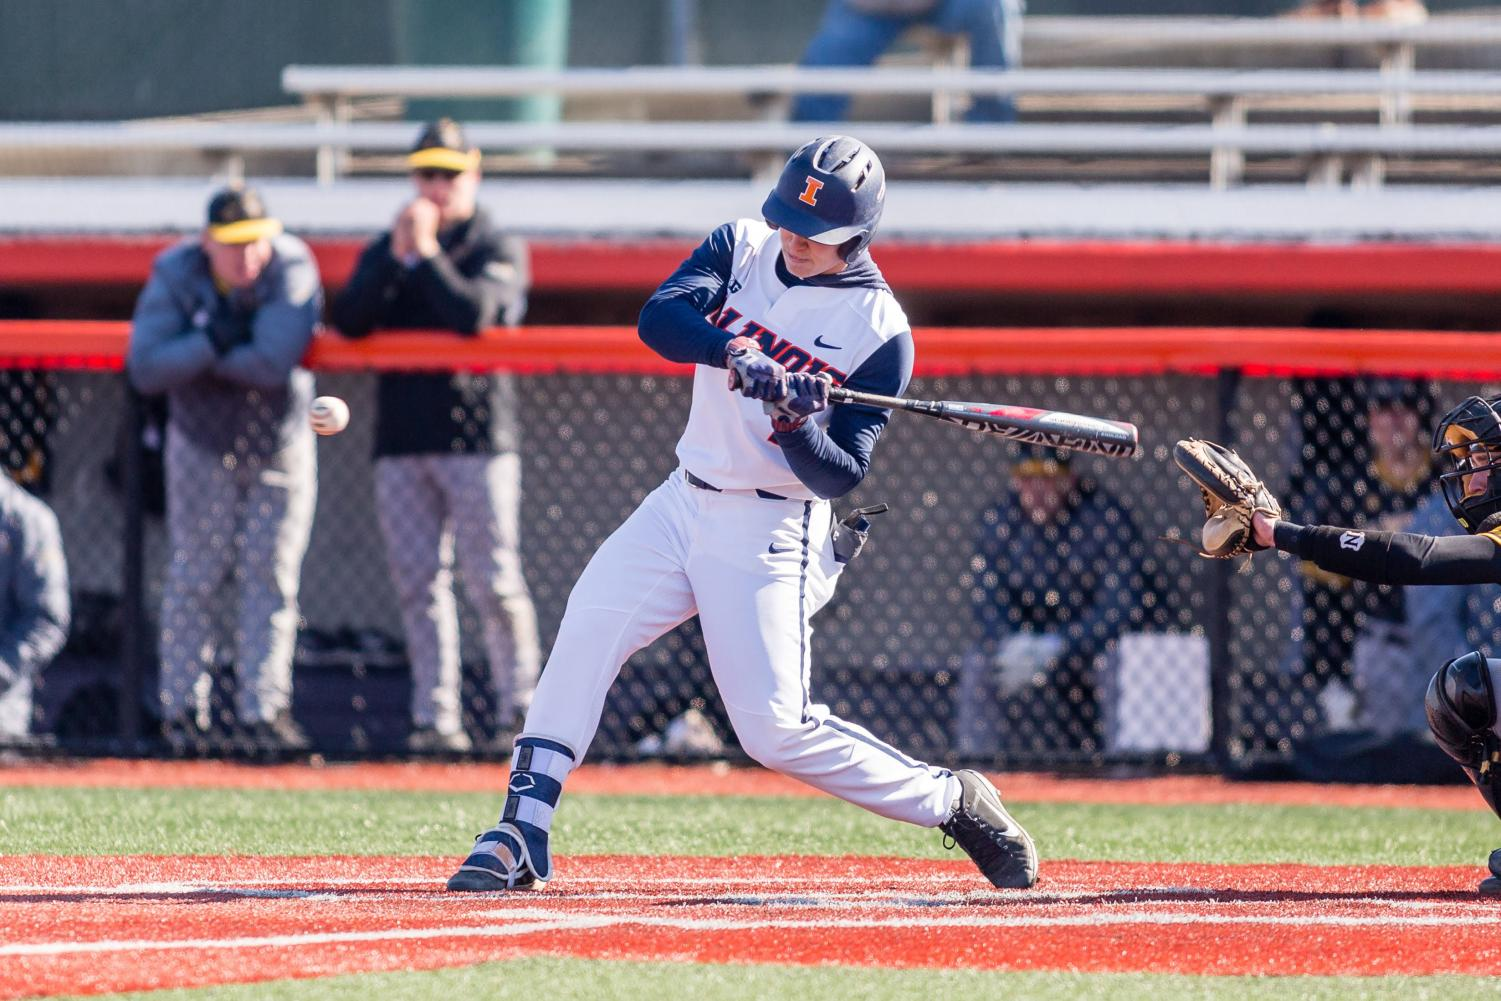 Illinois outfielder Jack Yalowitz swings at the pitch during the game against Milwaukee at Illinois Field on March 14, 2018. Yalowitz was recently named the Big Ten player of the week.